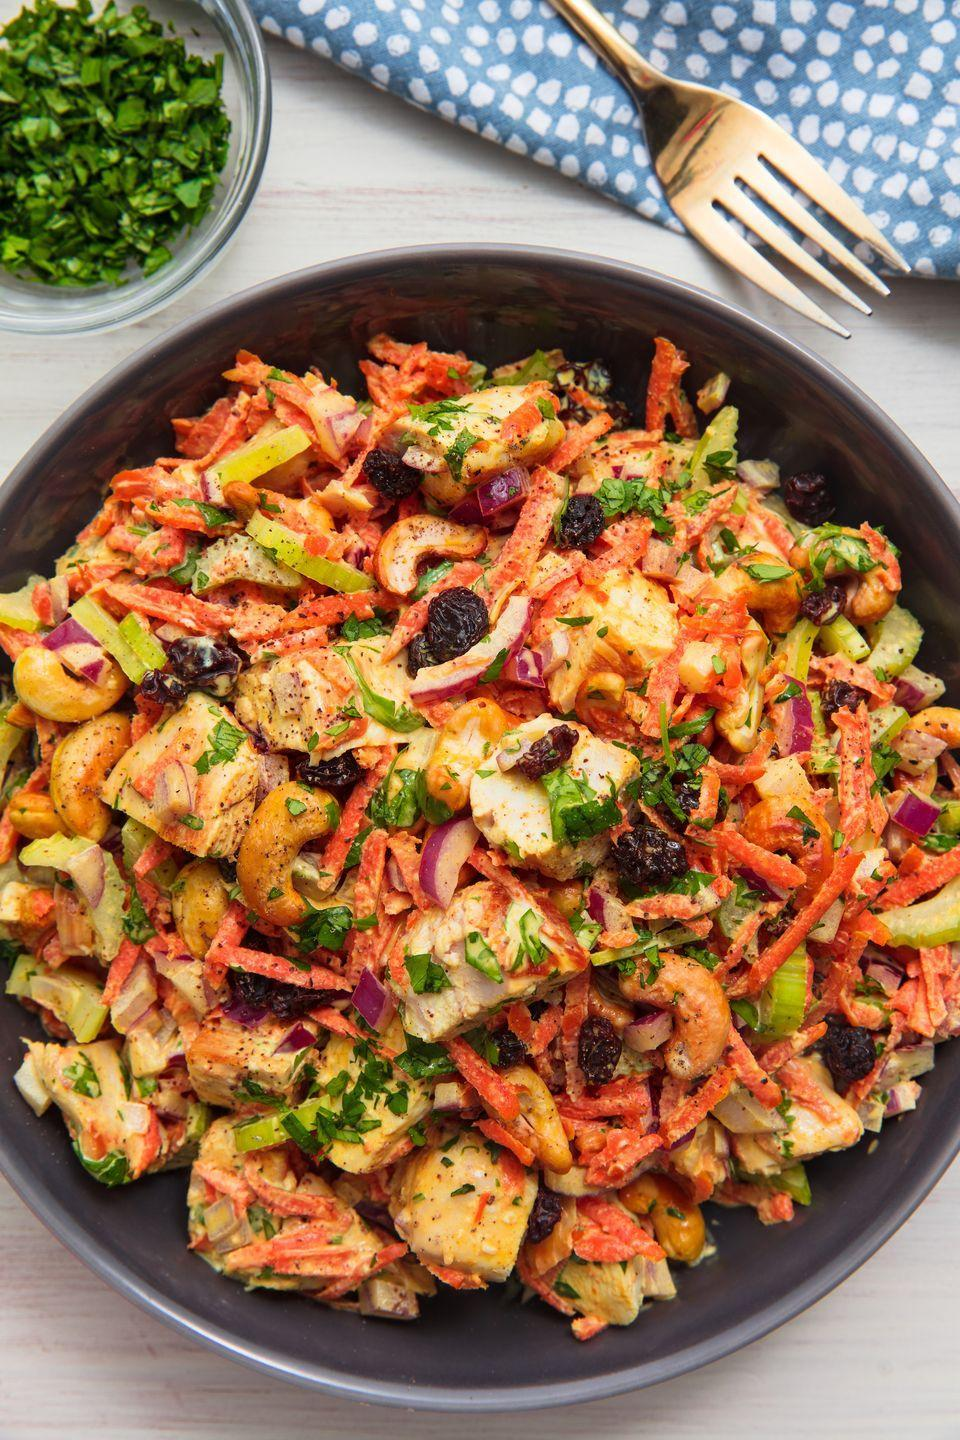 "<p>The gateway back into summer salads.</p><p>Get the recipe from <a href=""https://www.delish.com/cooking/recipe-ideas/recipes/a1571/curried-chicken-salad-recipe-8620/"" rel=""nofollow noopener"" target=""_blank"" data-ylk=""slk:Delish"" class=""link rapid-noclick-resp"">Delish</a>.</p>"